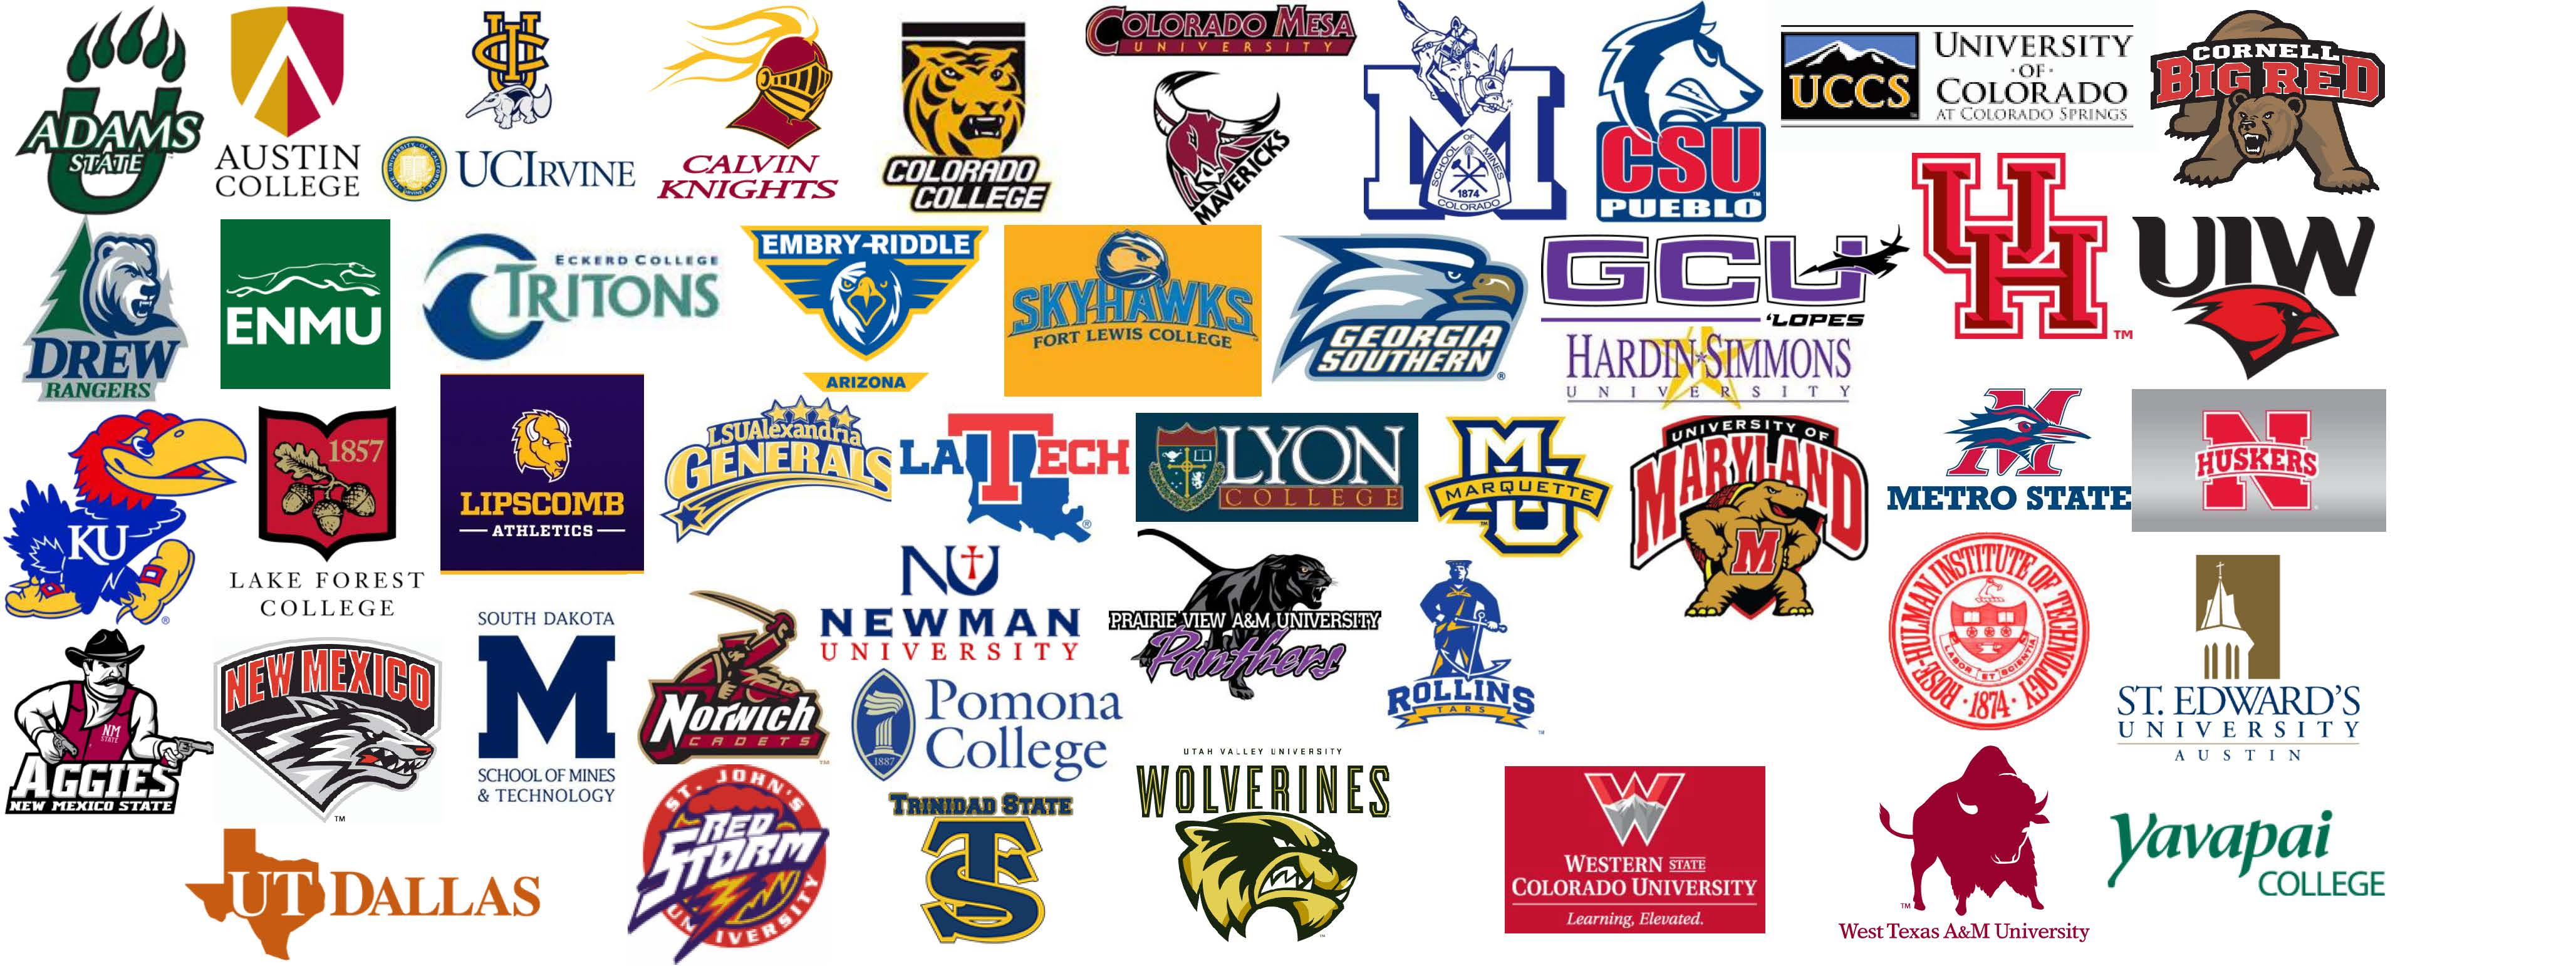 2014 Rio Rapids Alumni Colleges Graphic